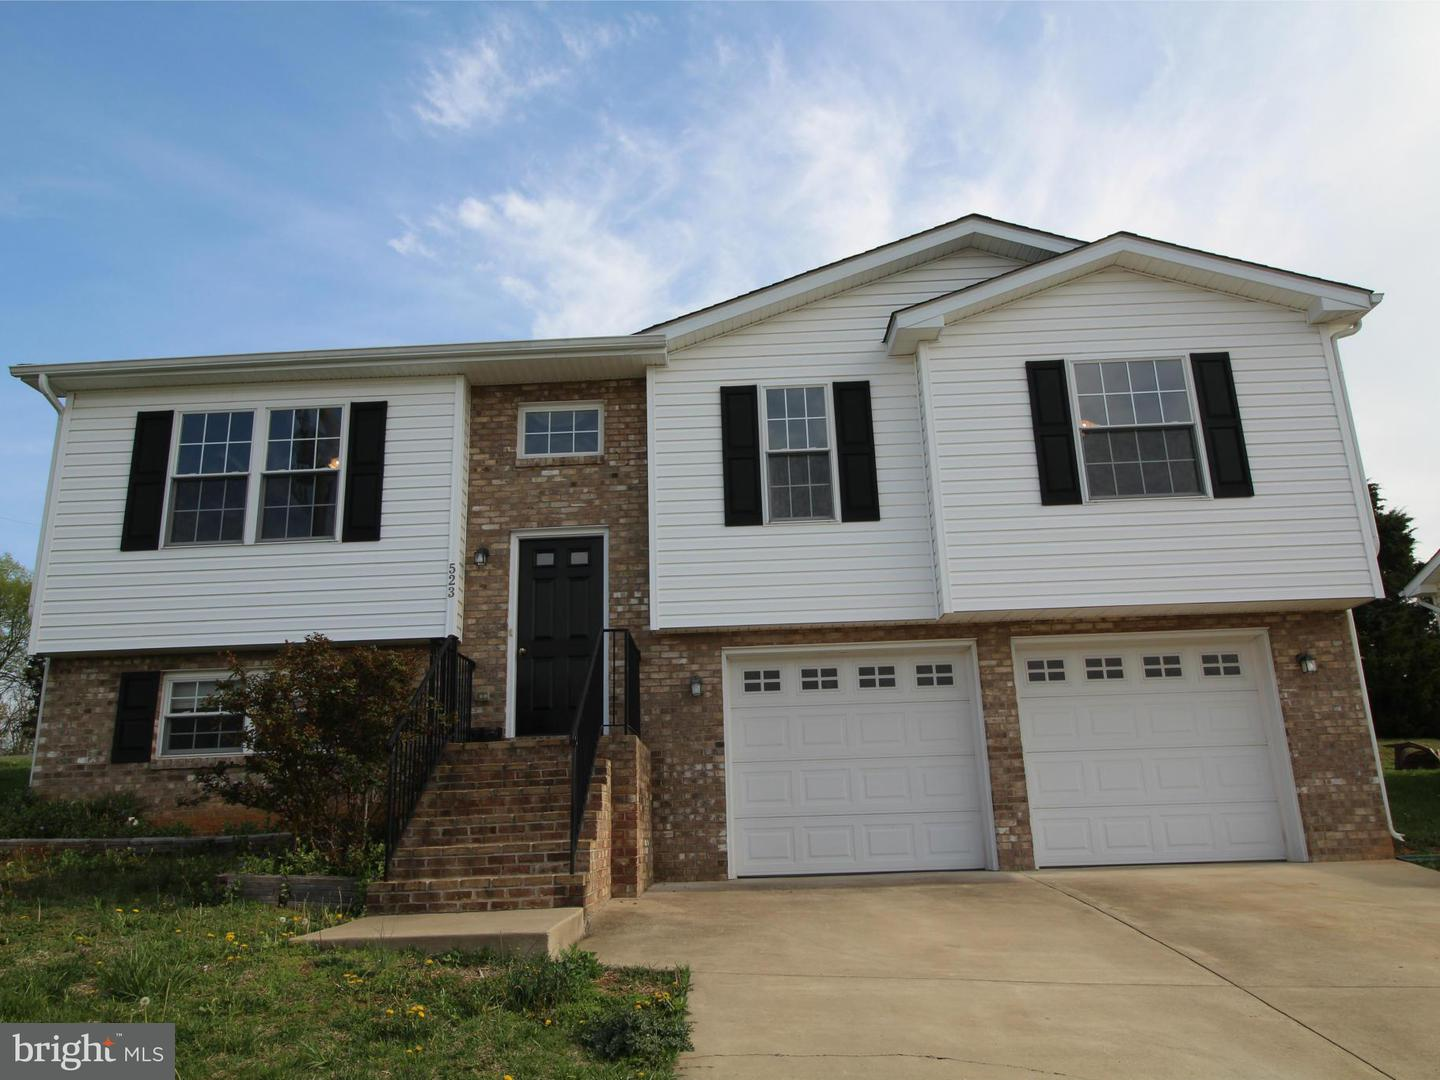 Other Residential for Rent at 523 Thompson St Strasburg, Virginia 22657 United States